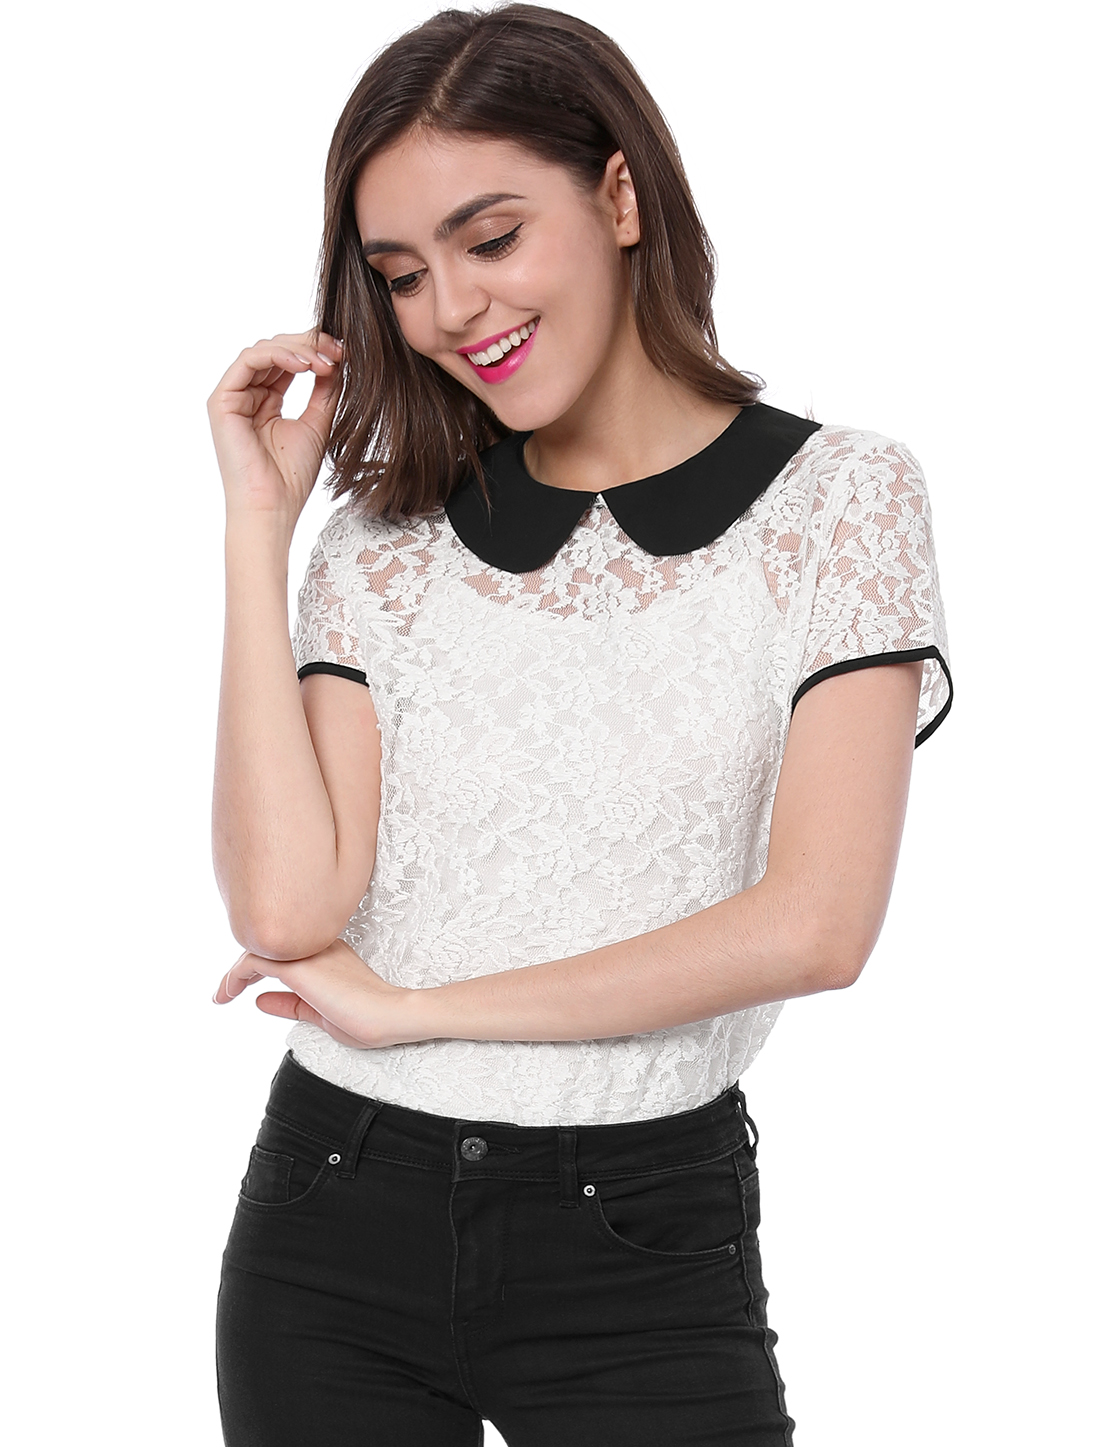 Women See Through Contrast Peter Pan Collar Lace Top White S